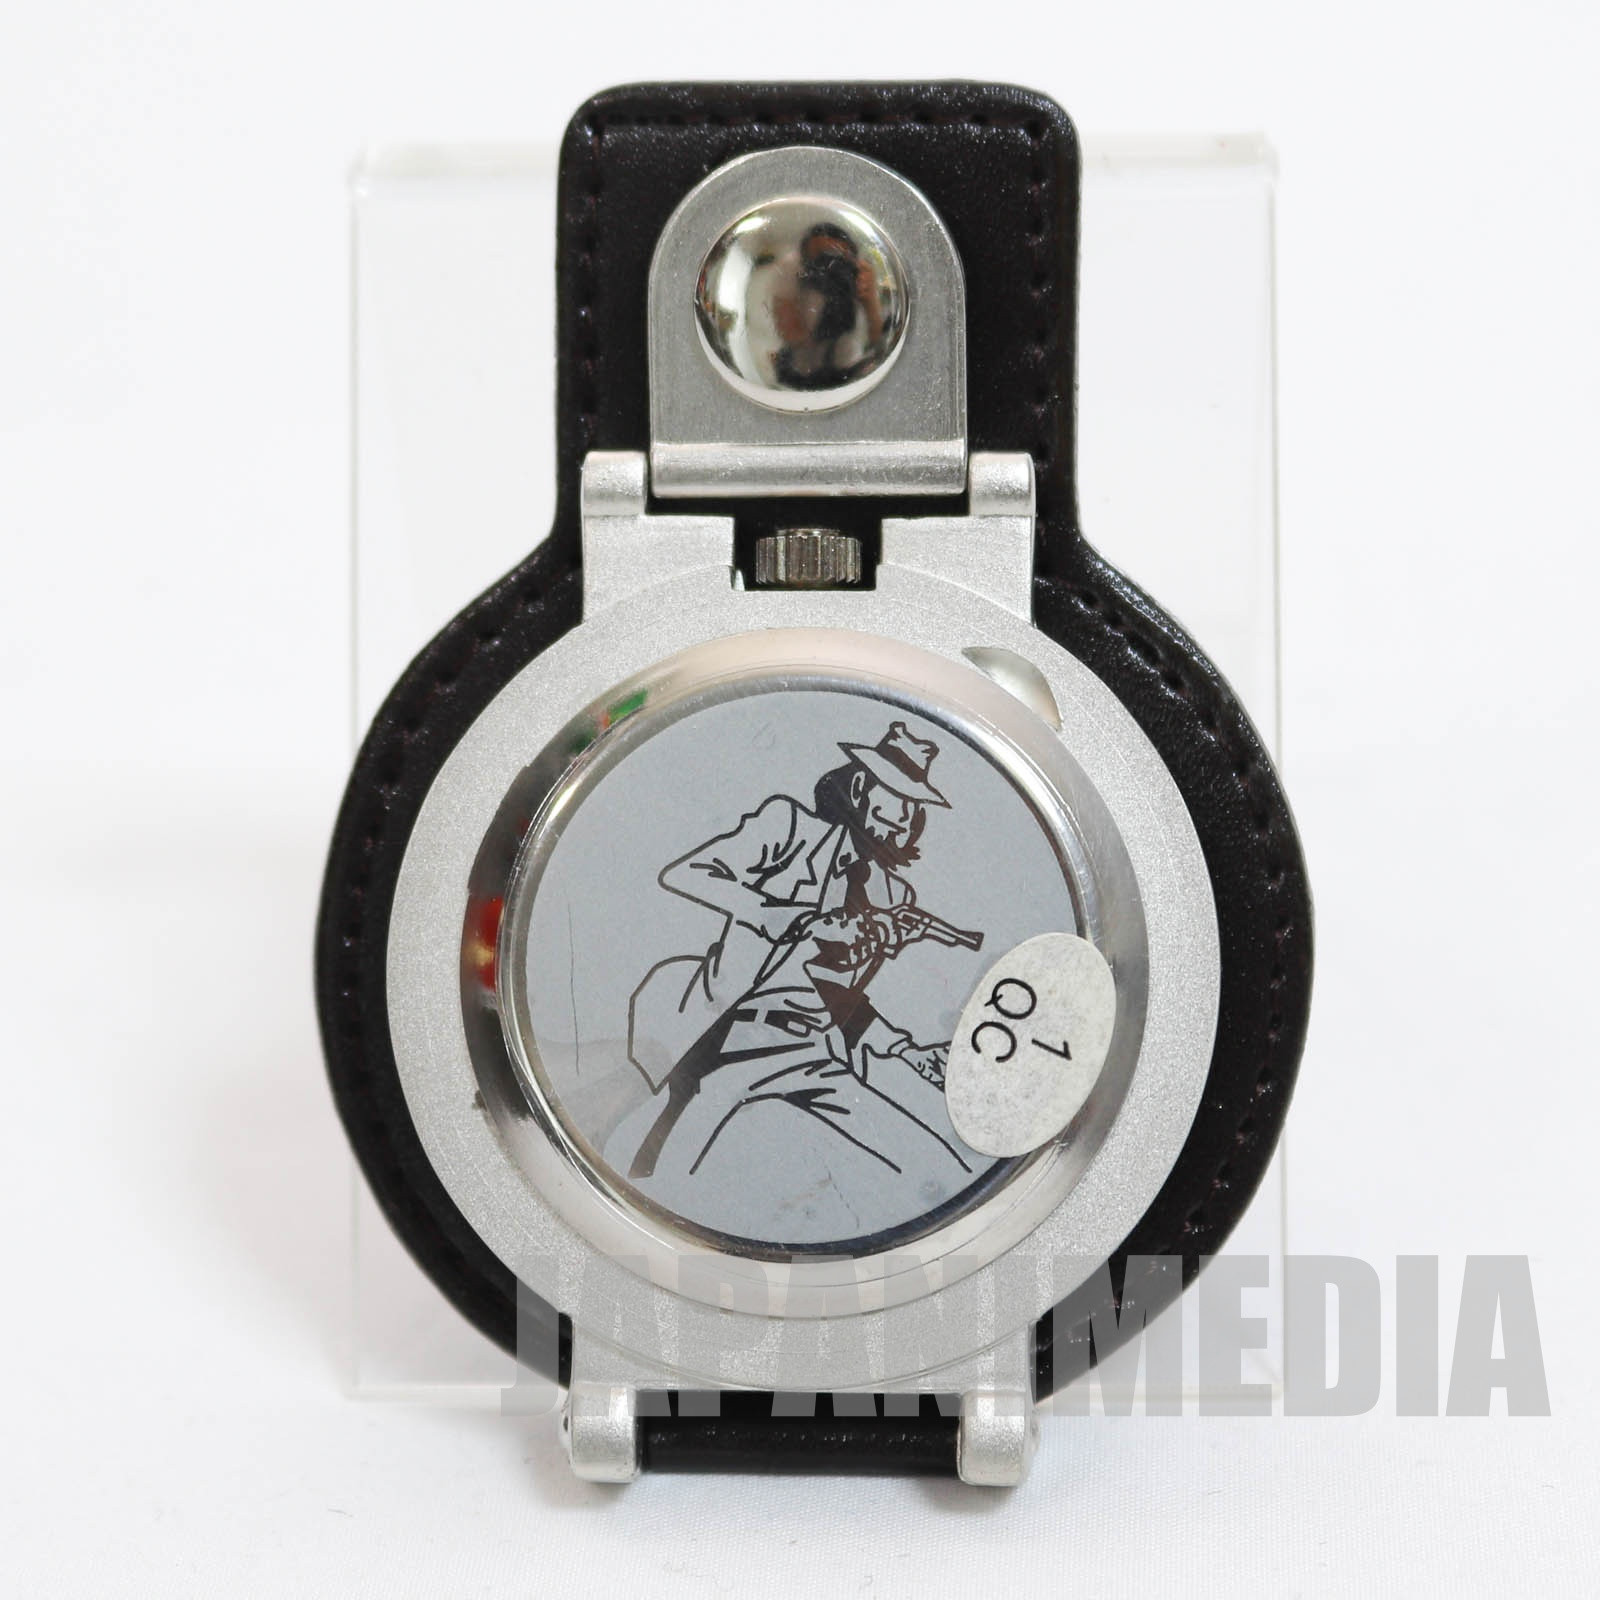 Lupin the Third (3rd) Daisuke Jigen Wrist Watch JAPAN ANIME 2